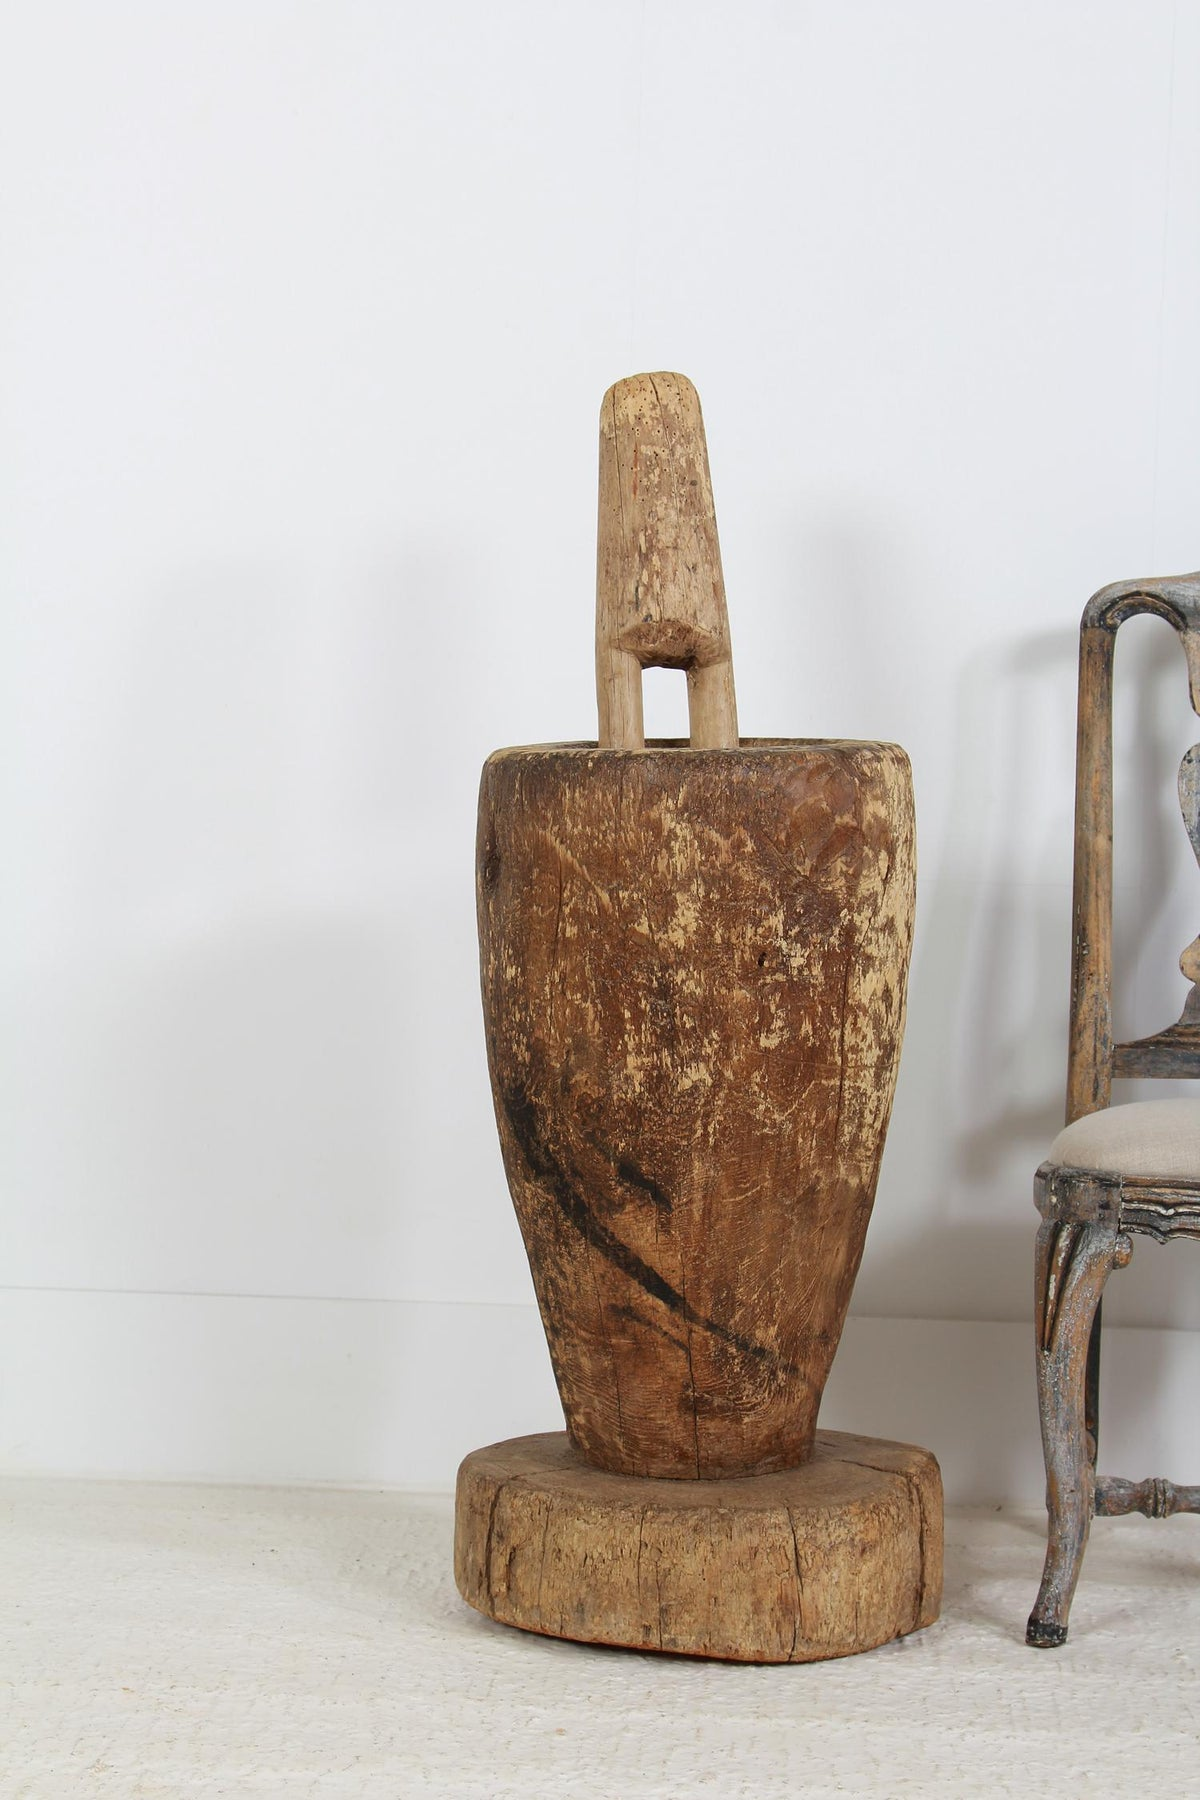 Huge Antique Oversized Wooden Pestle and Mortar